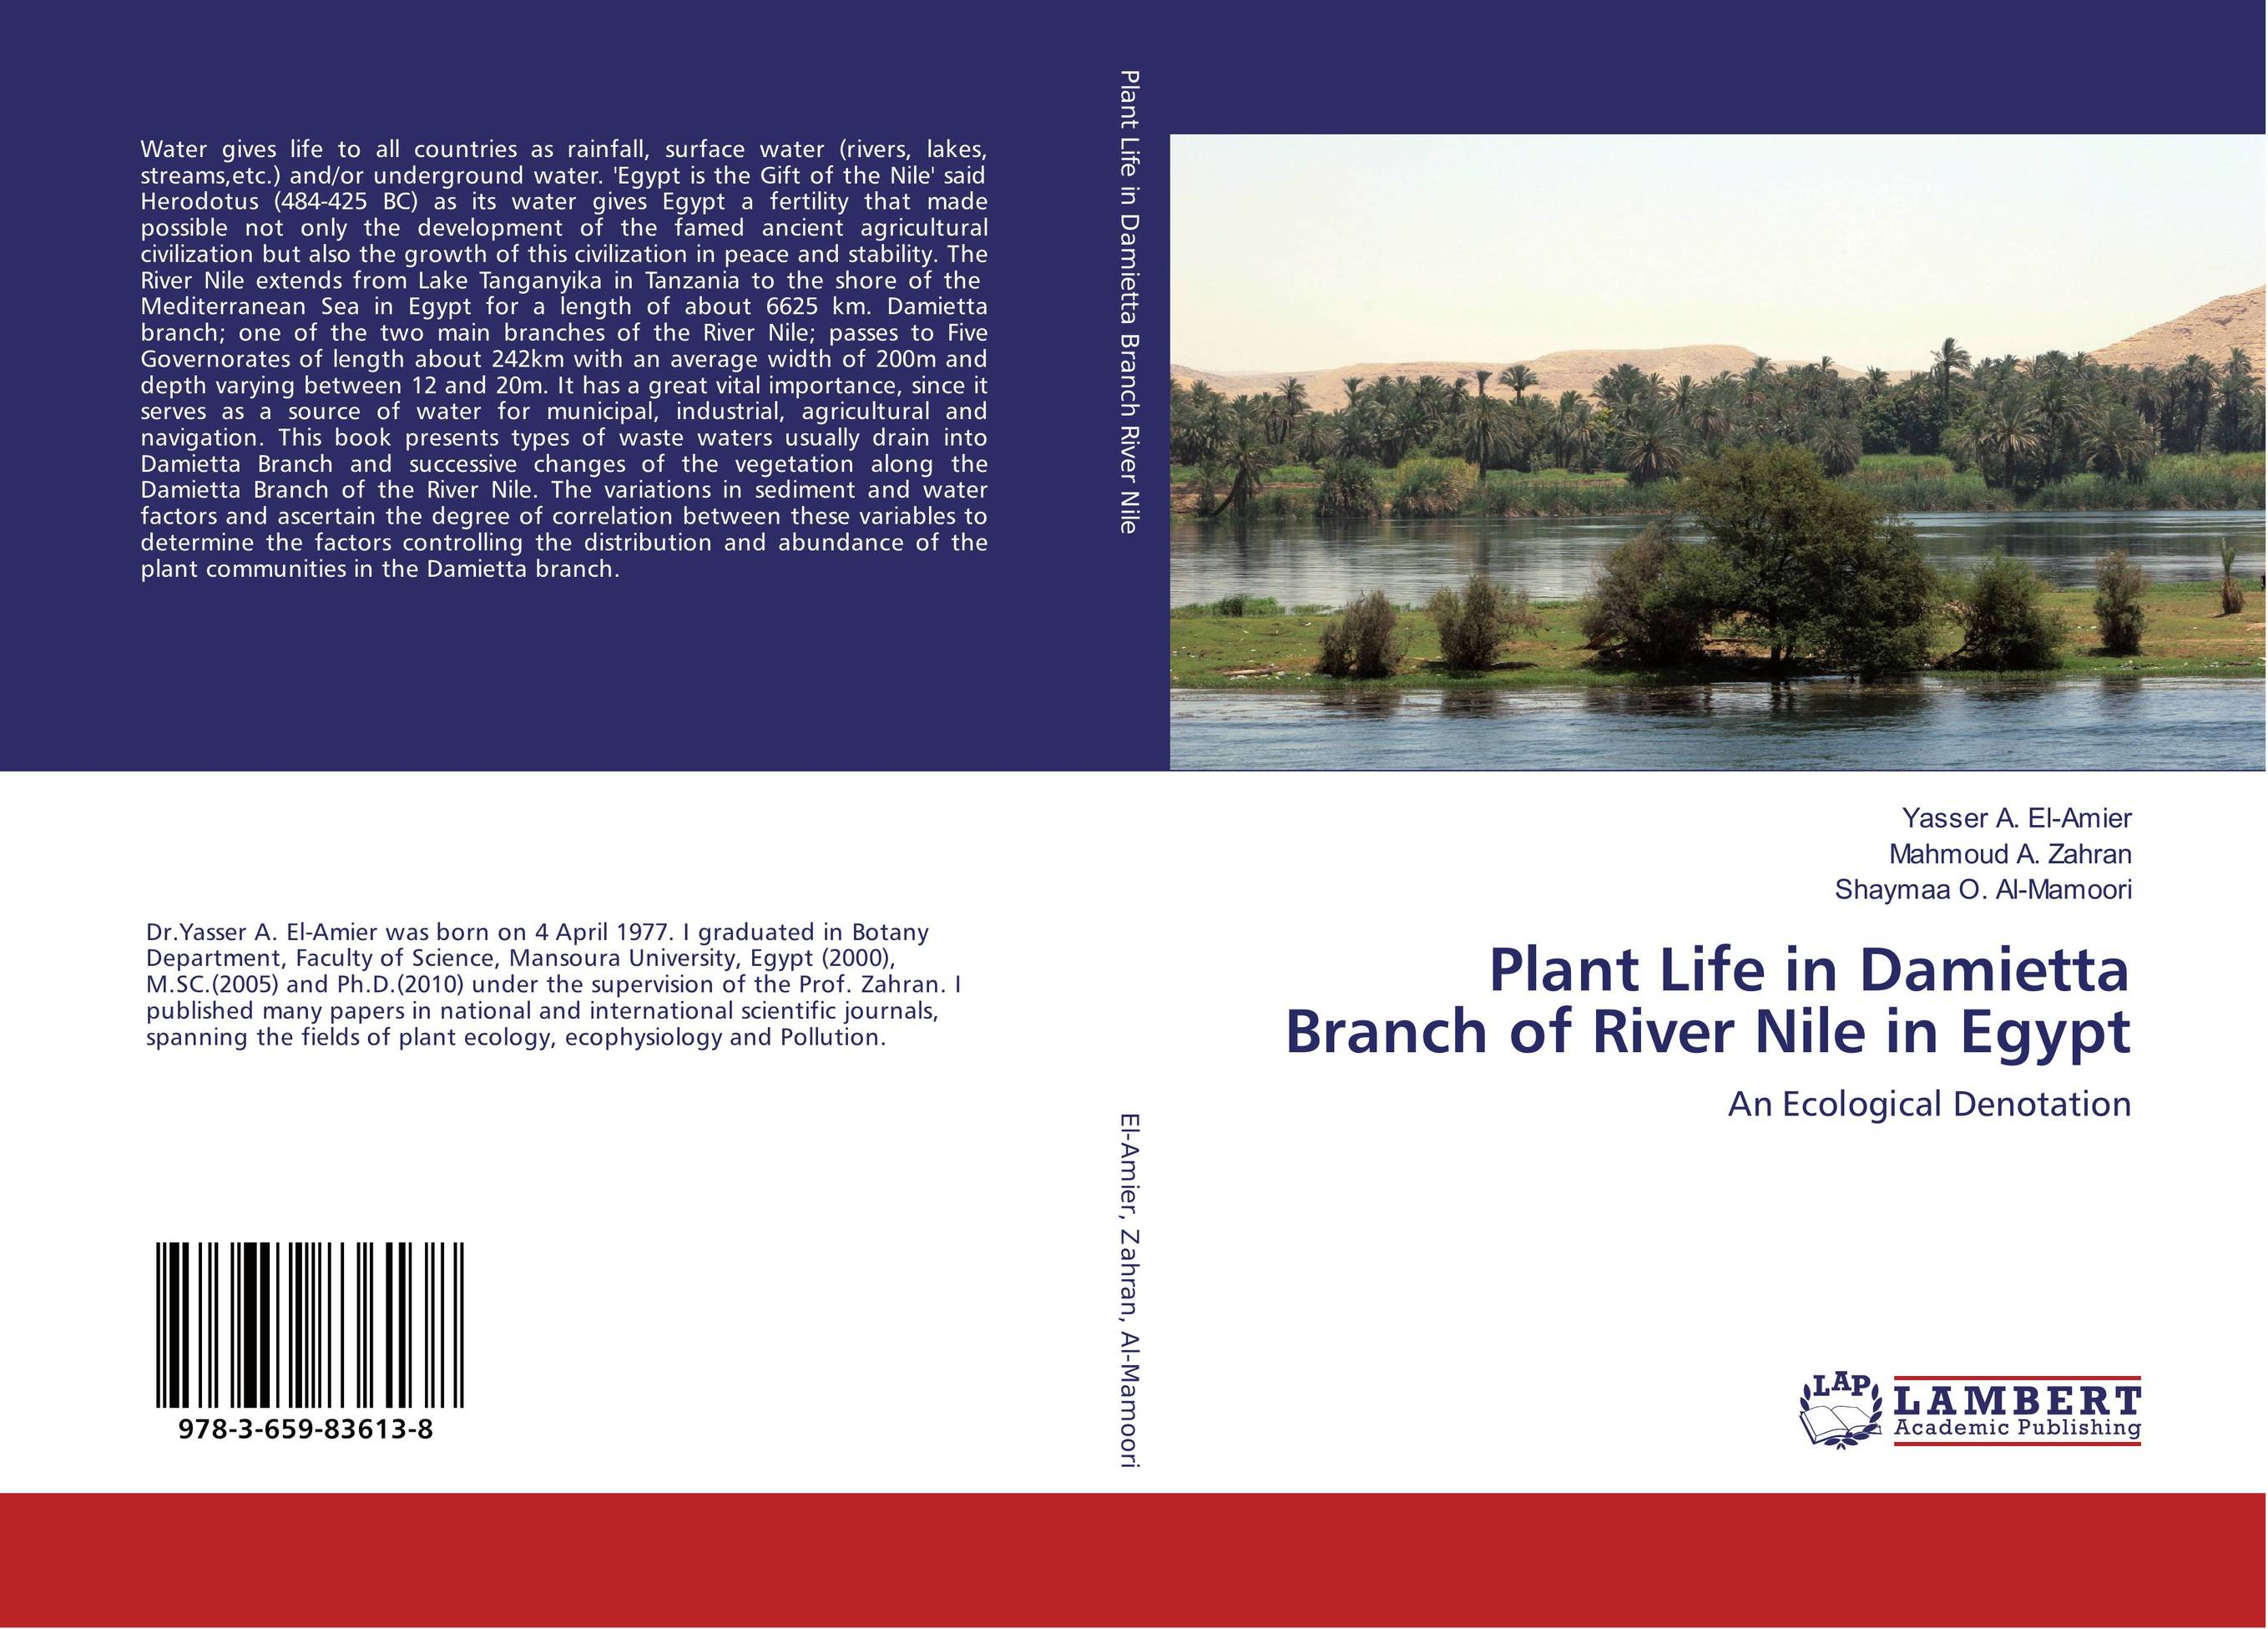 Plant Life in Damietta Branch of River Nile in Egypt